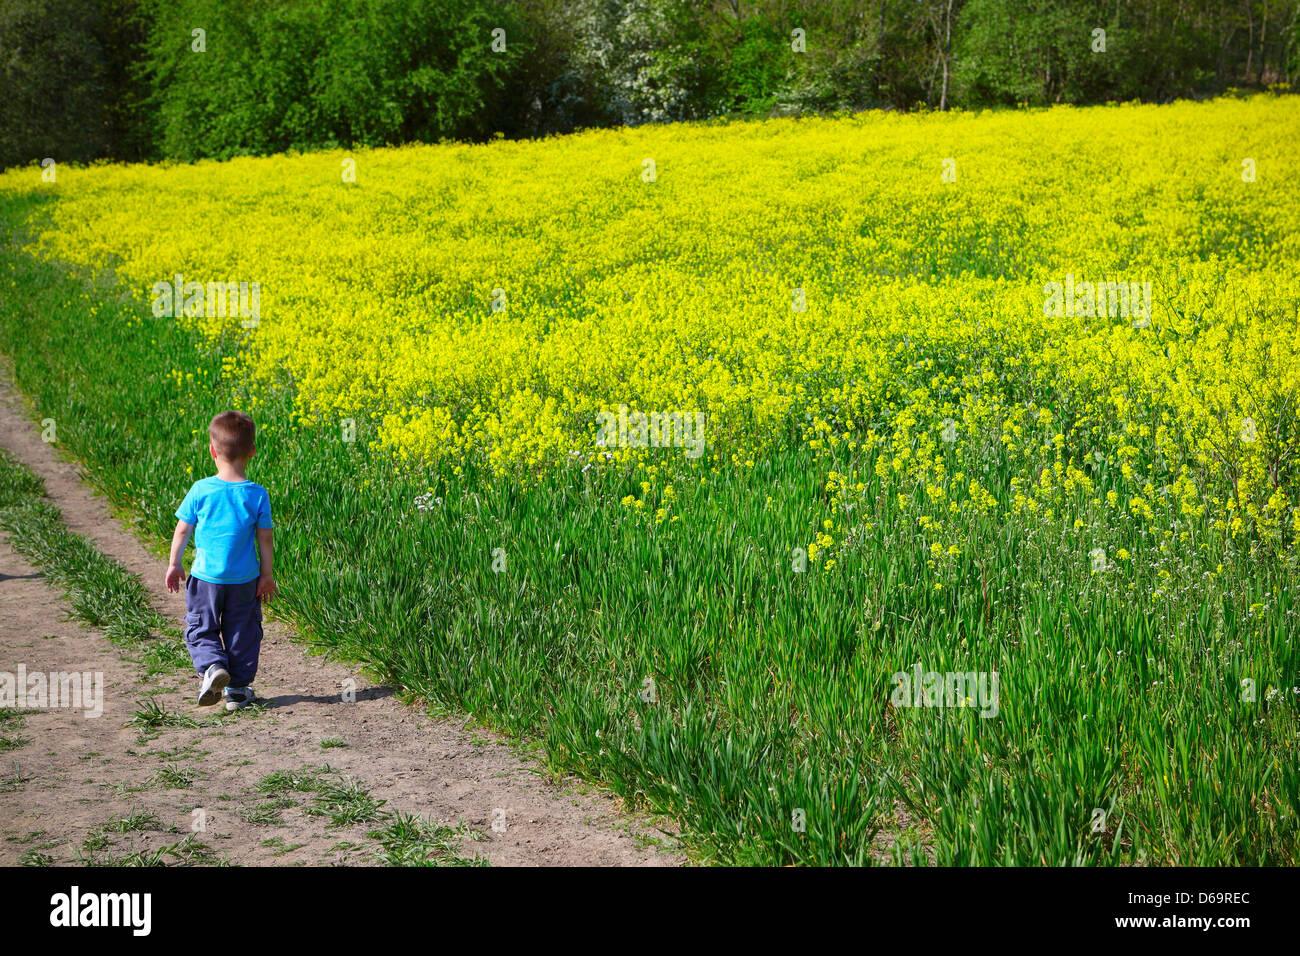 In the midst of nature - Stock Image